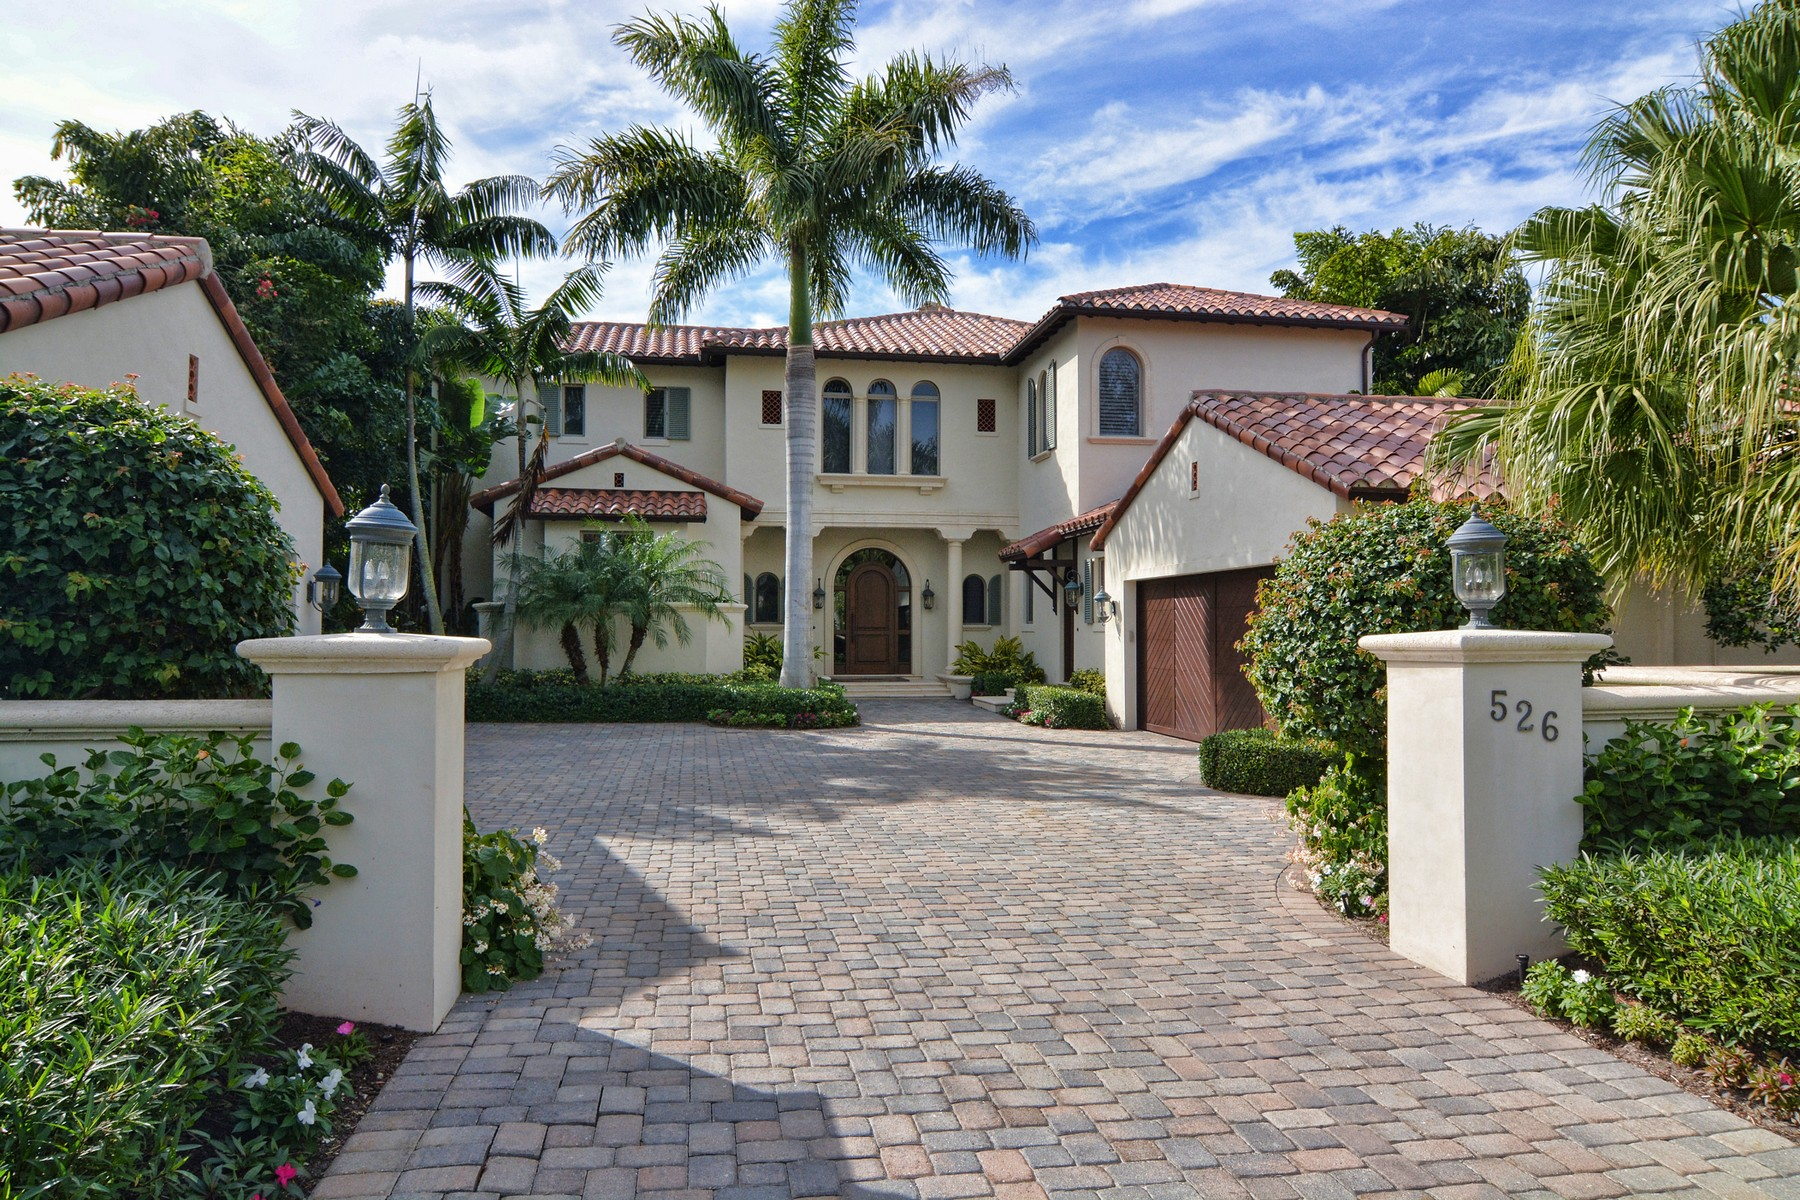 Single Family Home for Sale at 526 Bald Eagle Drive at Trump National Jupiter, Florida 33477 United States